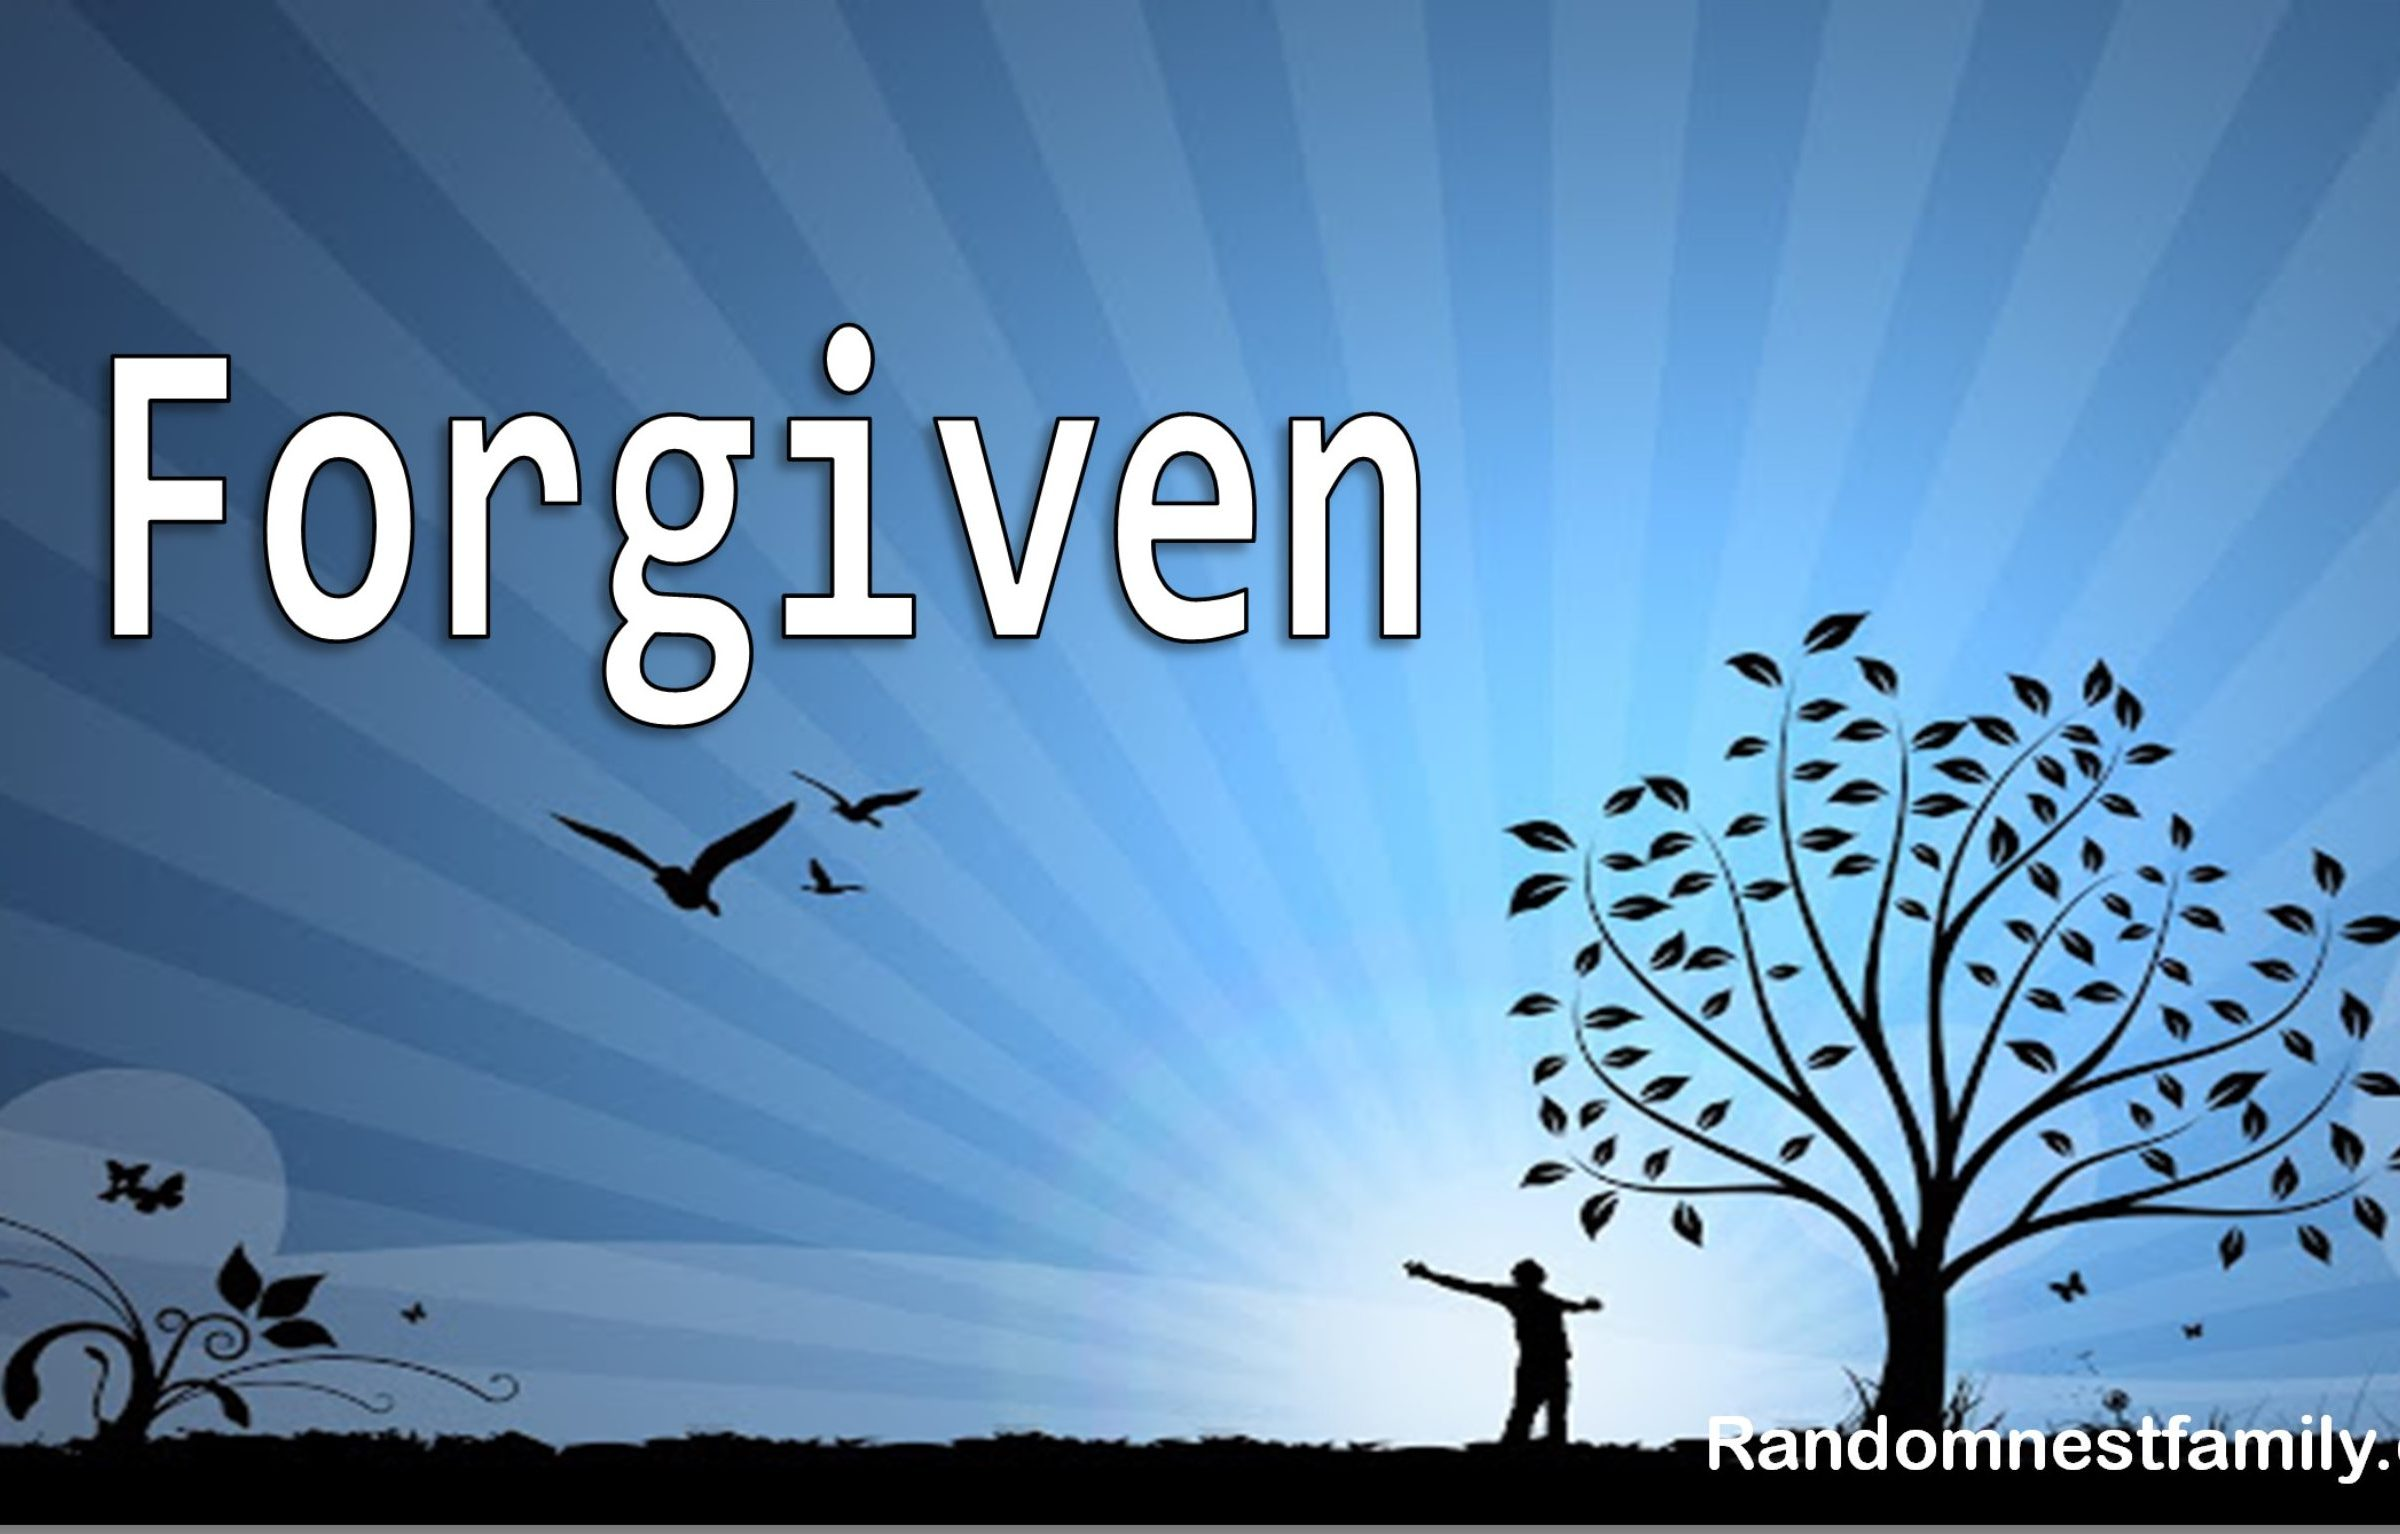 Forgiven photo @randomnestfamily